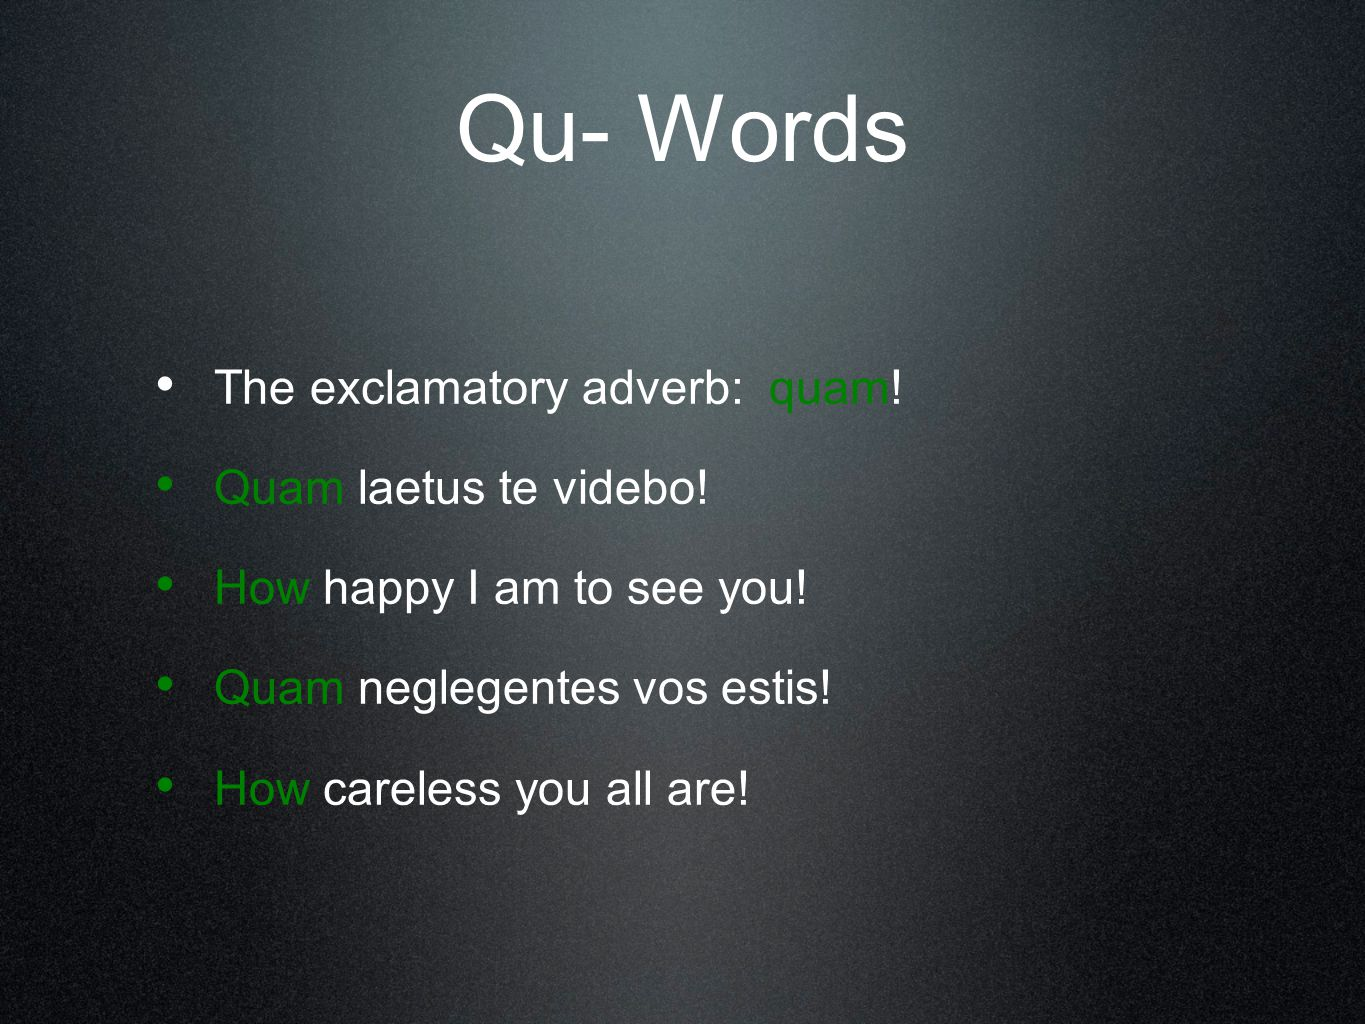 Qu- Words The exclamatory adverb: quam! Quam laetus te videbo! How happy I am to see you! Quam neglegentes vos estis! How careless you all are!